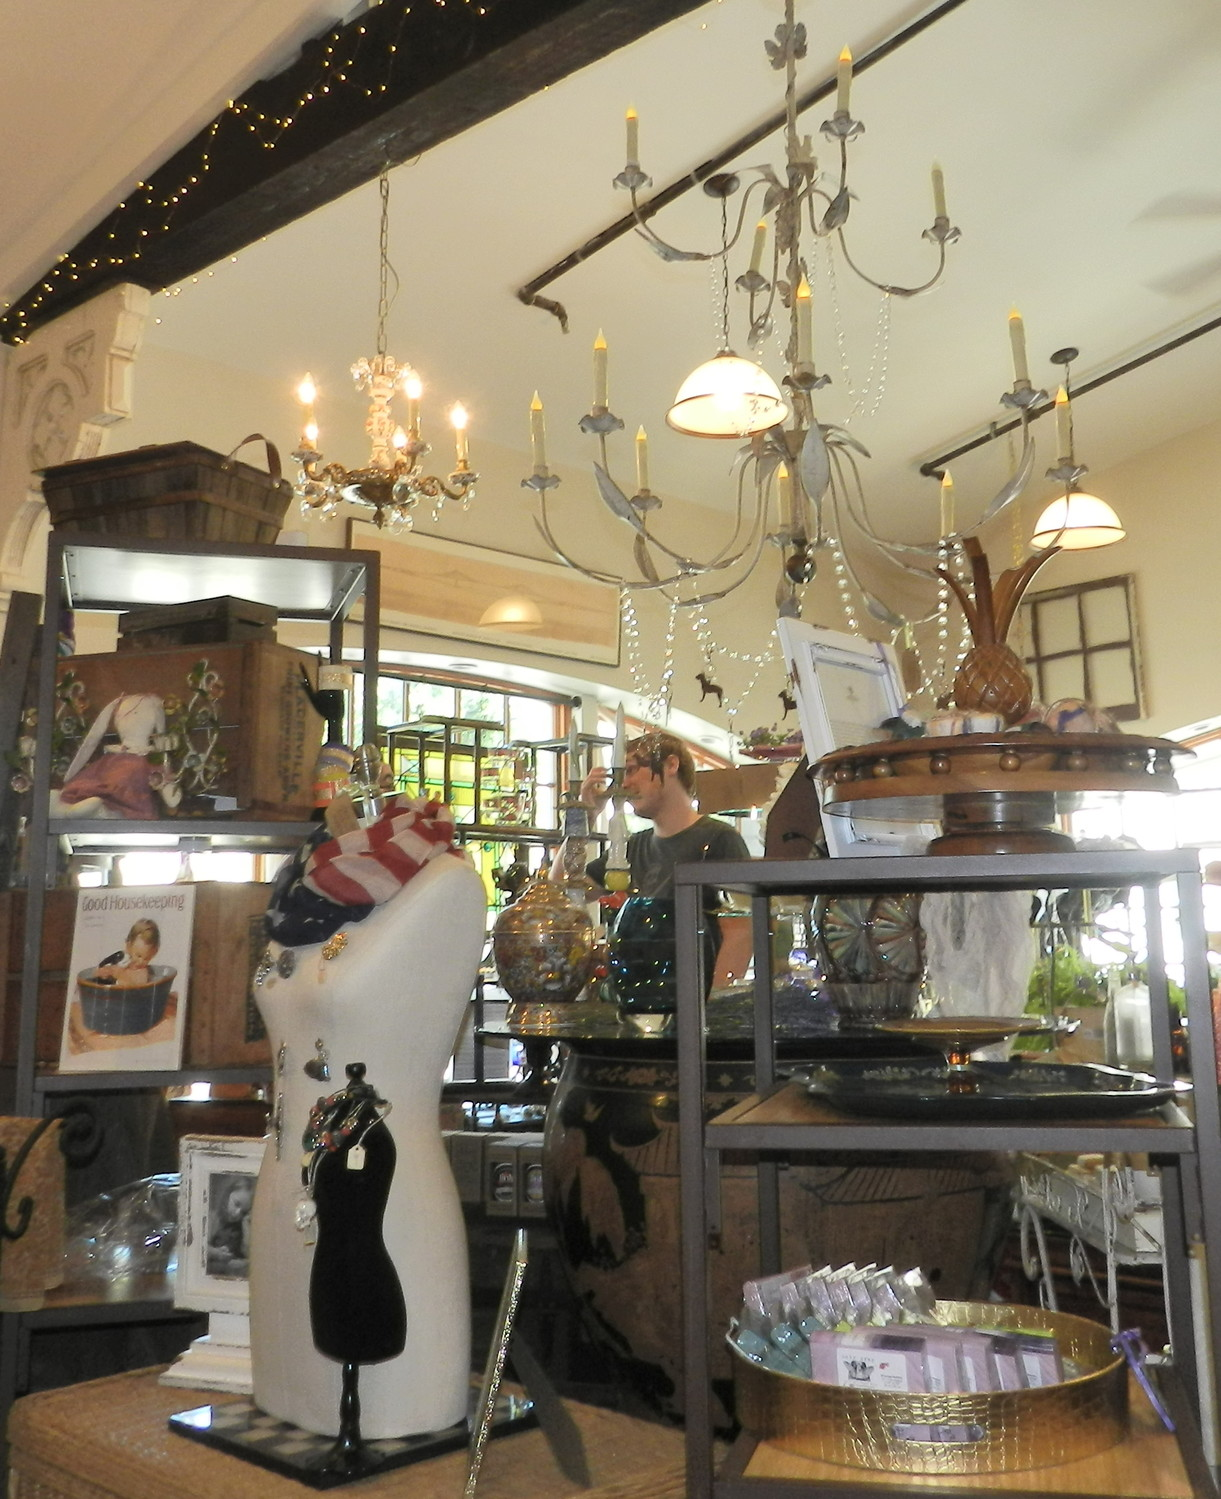 The store boasts antique items from all over the east coast, including Maine, Connecticut, Pennsylvania and Florida.